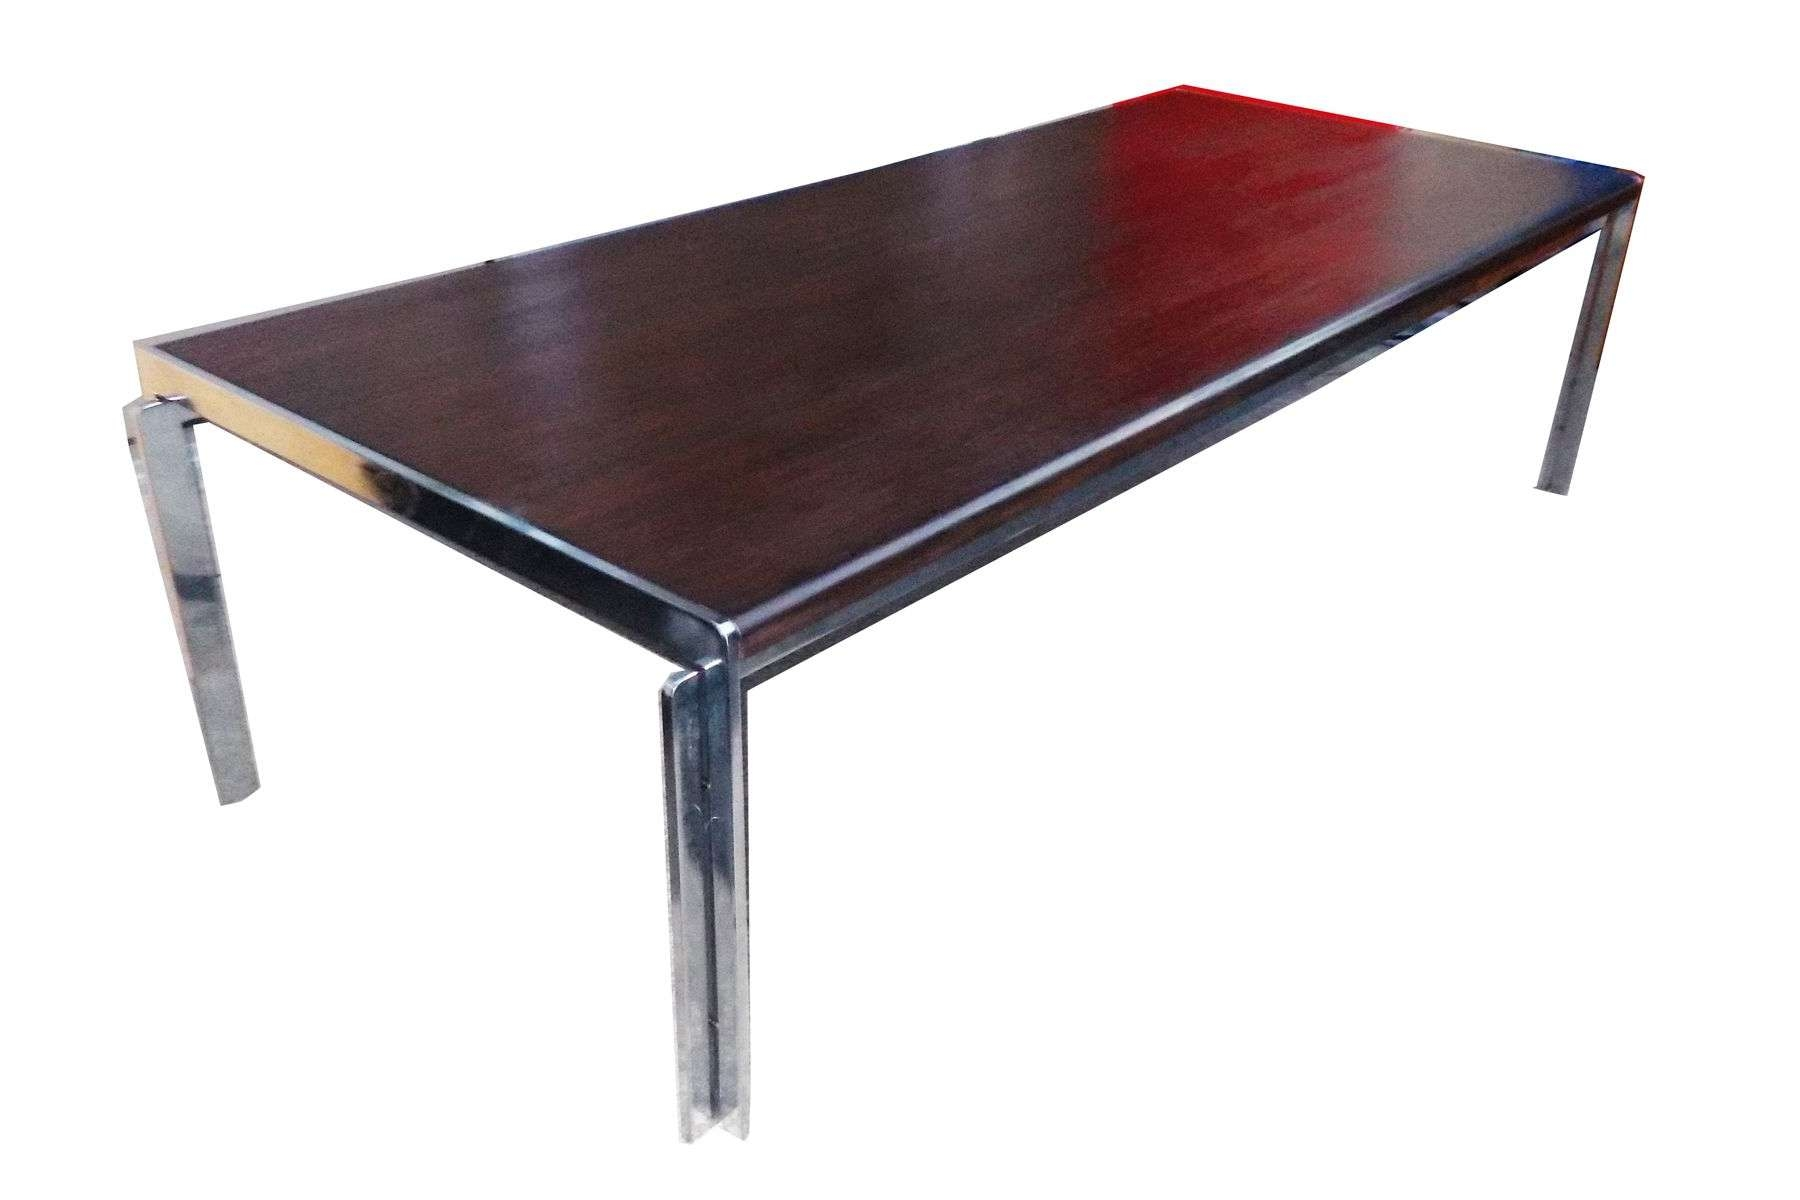 Preferred Chrome And Wood Coffee Tables Inside Chrome And Wood Coffee Table Furniture (View 15 of 20)